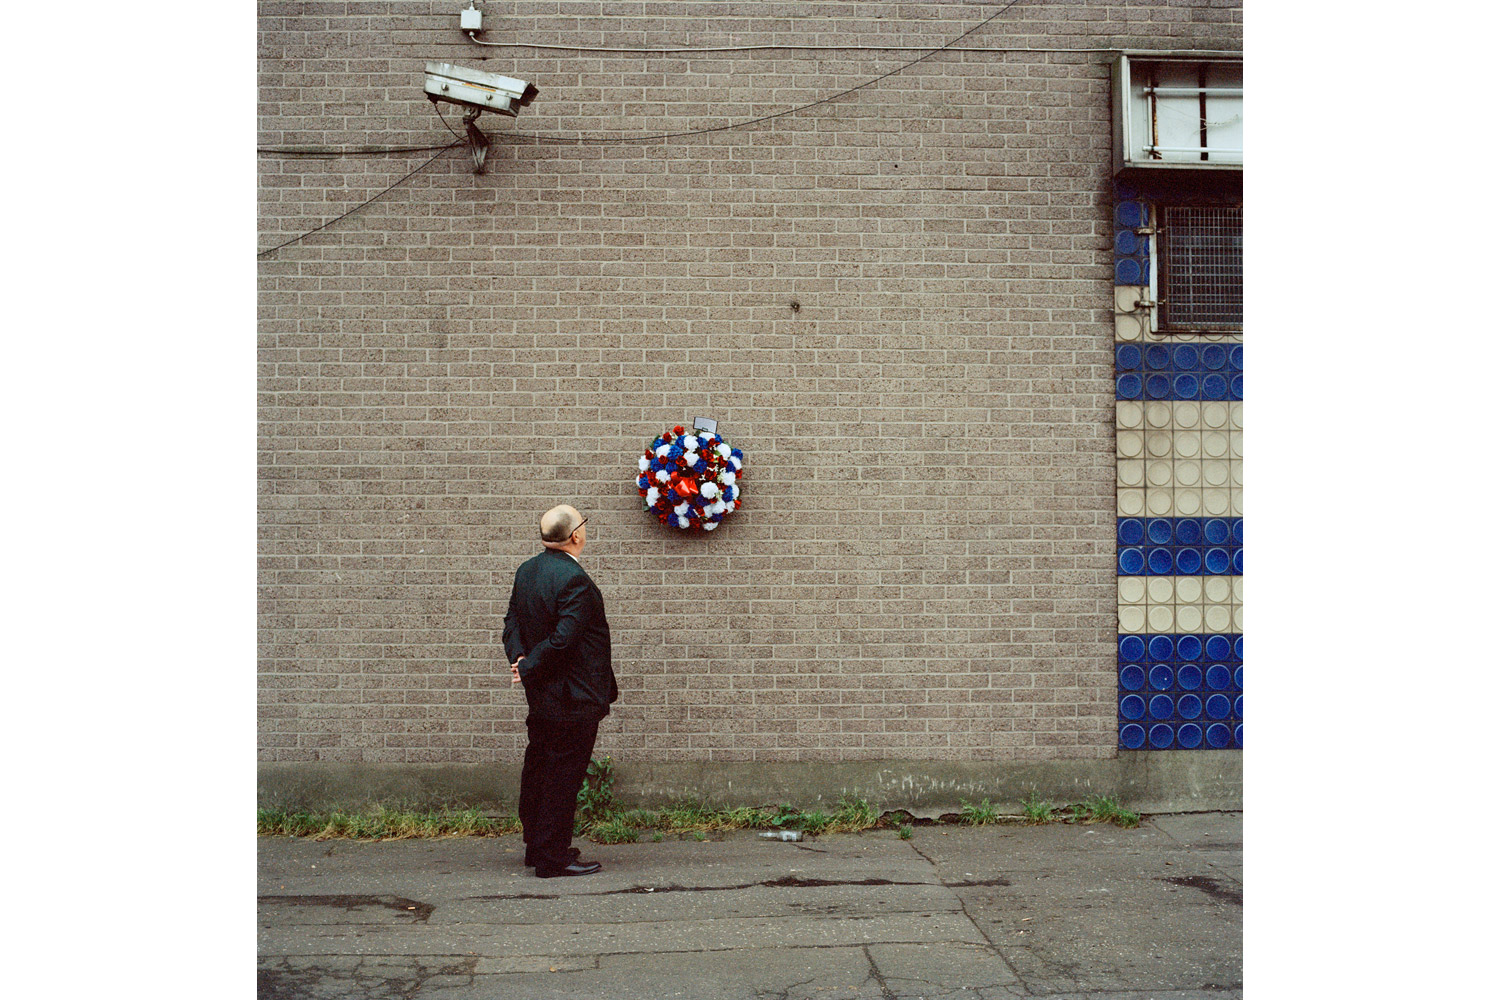 Tommy looks on at a remembrance wreath for two murdered UDA members, both killed by the UVF (Ulster Volunteer Force) during a loyalist feud. 2011.